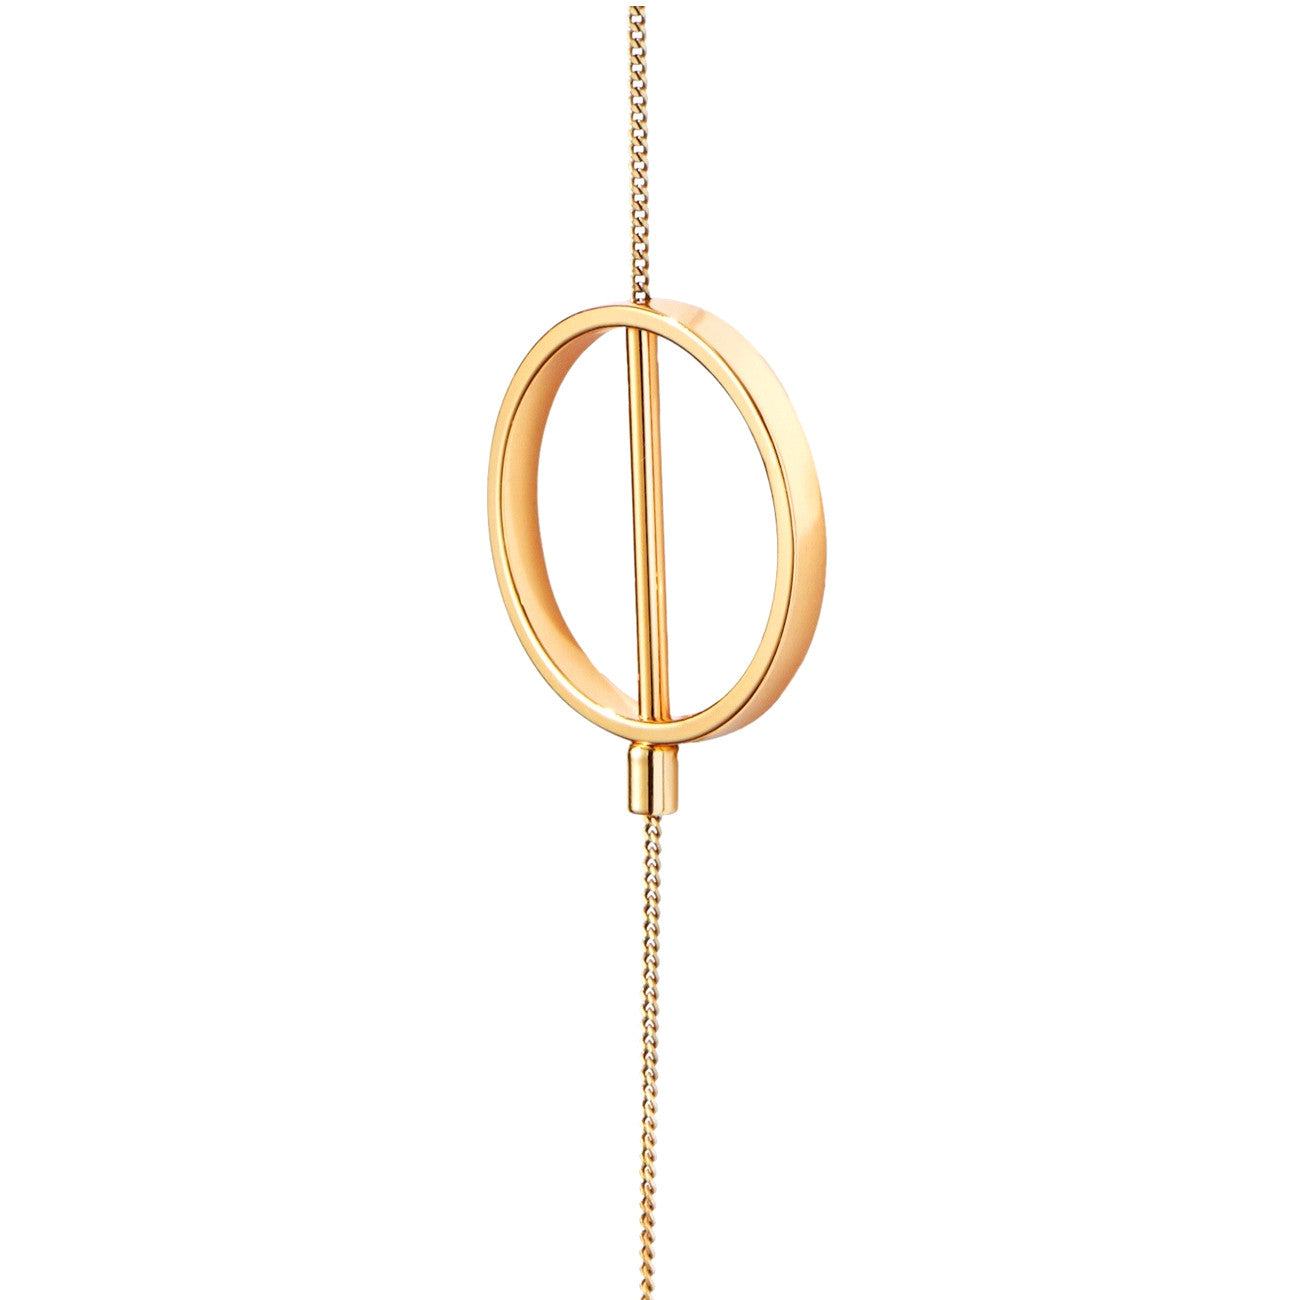 Jenny Bird Rhine Lariat Necklace in High Polish Gold